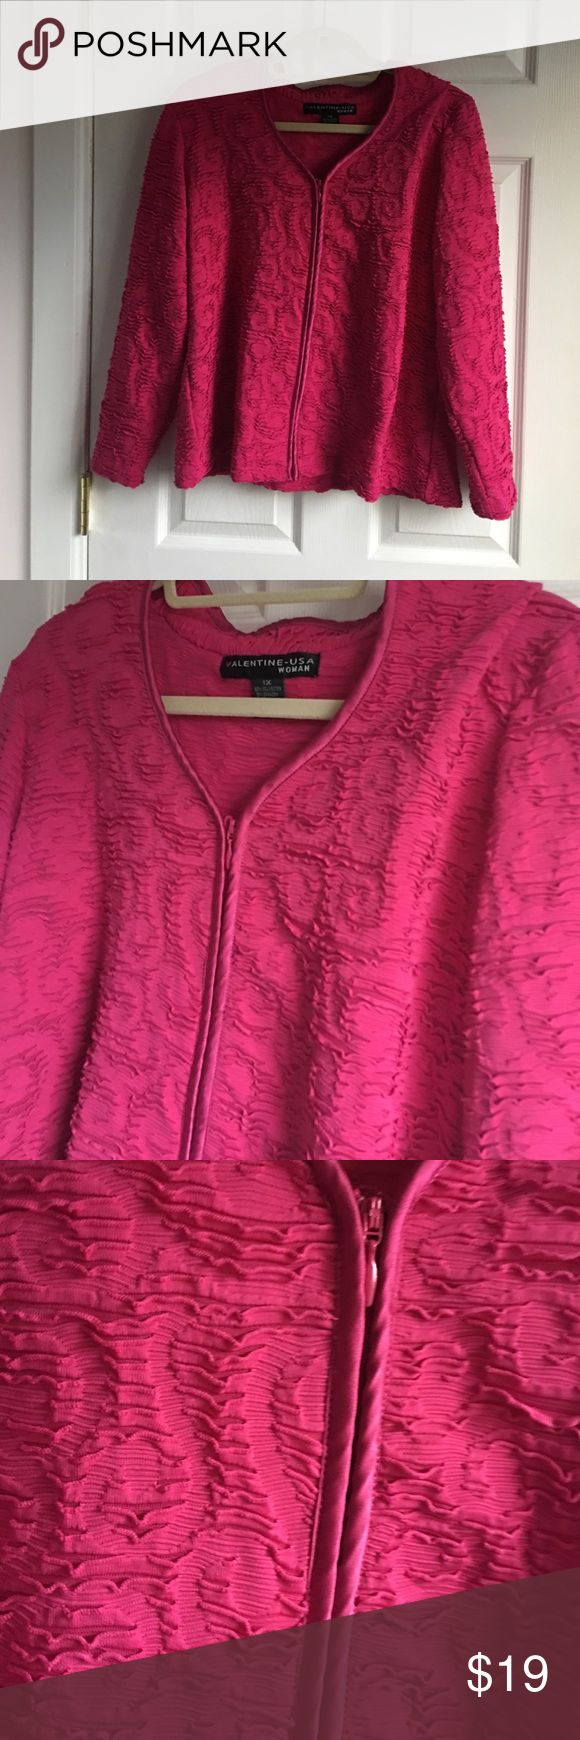 Magenta zippered dressy jacket Gorgeous magenta color. Zippered. Stretch material Jackets & Coats